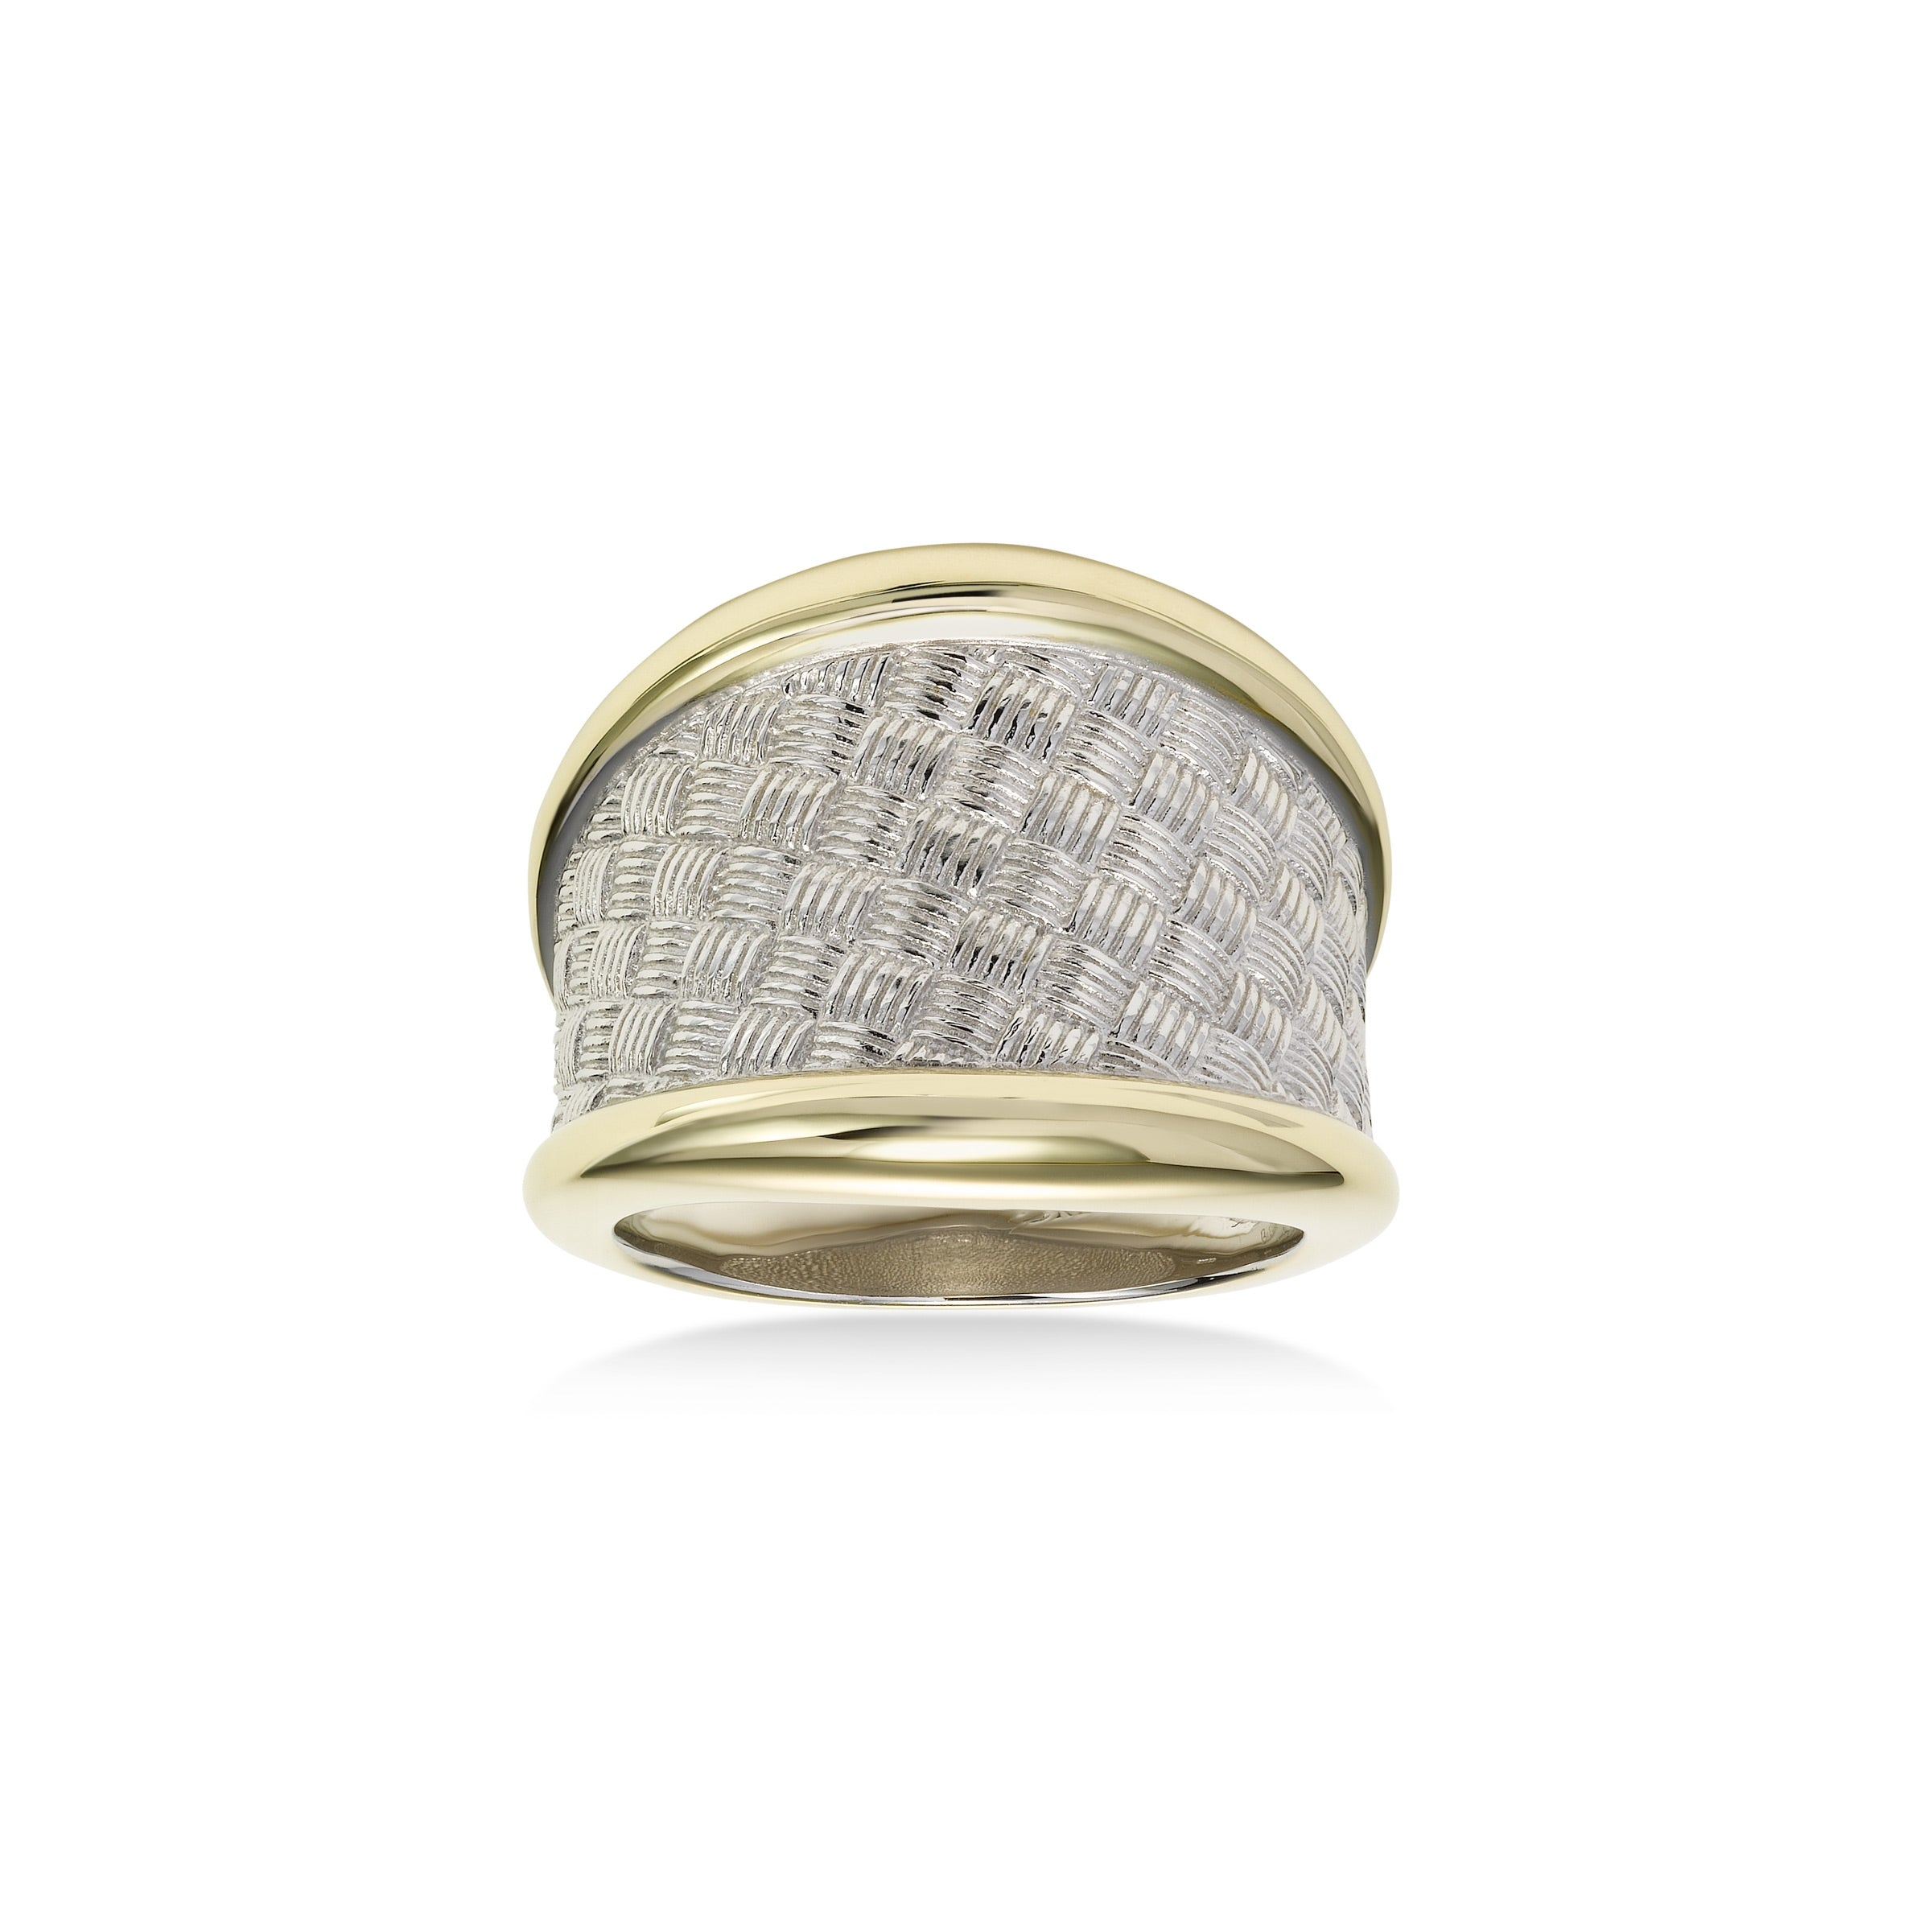 Weave Design Ring, Sterling Silver with Yellow Gold Plating